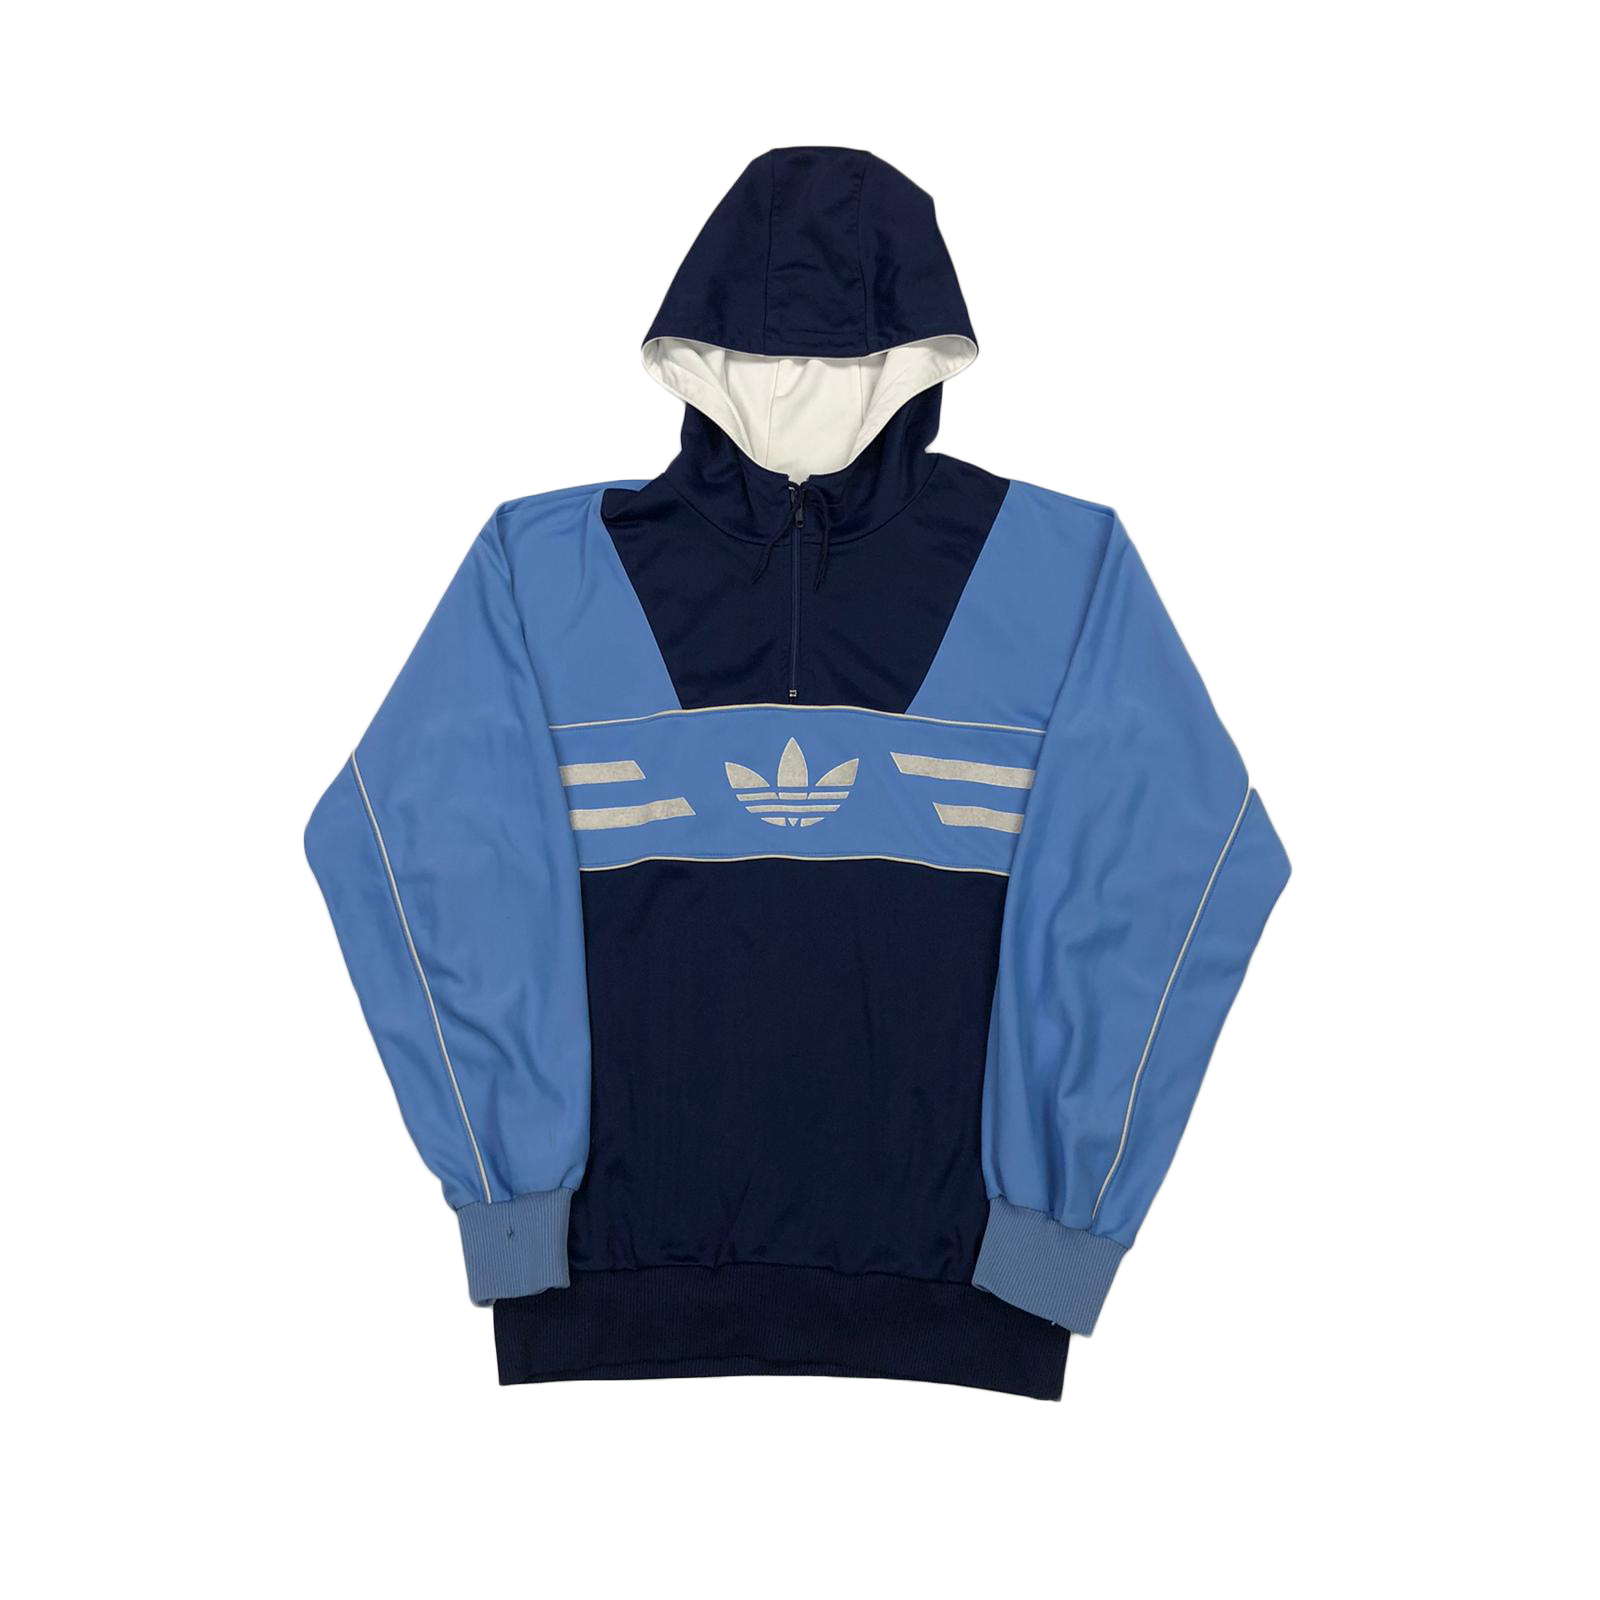 90's Adidas track jacket pullover